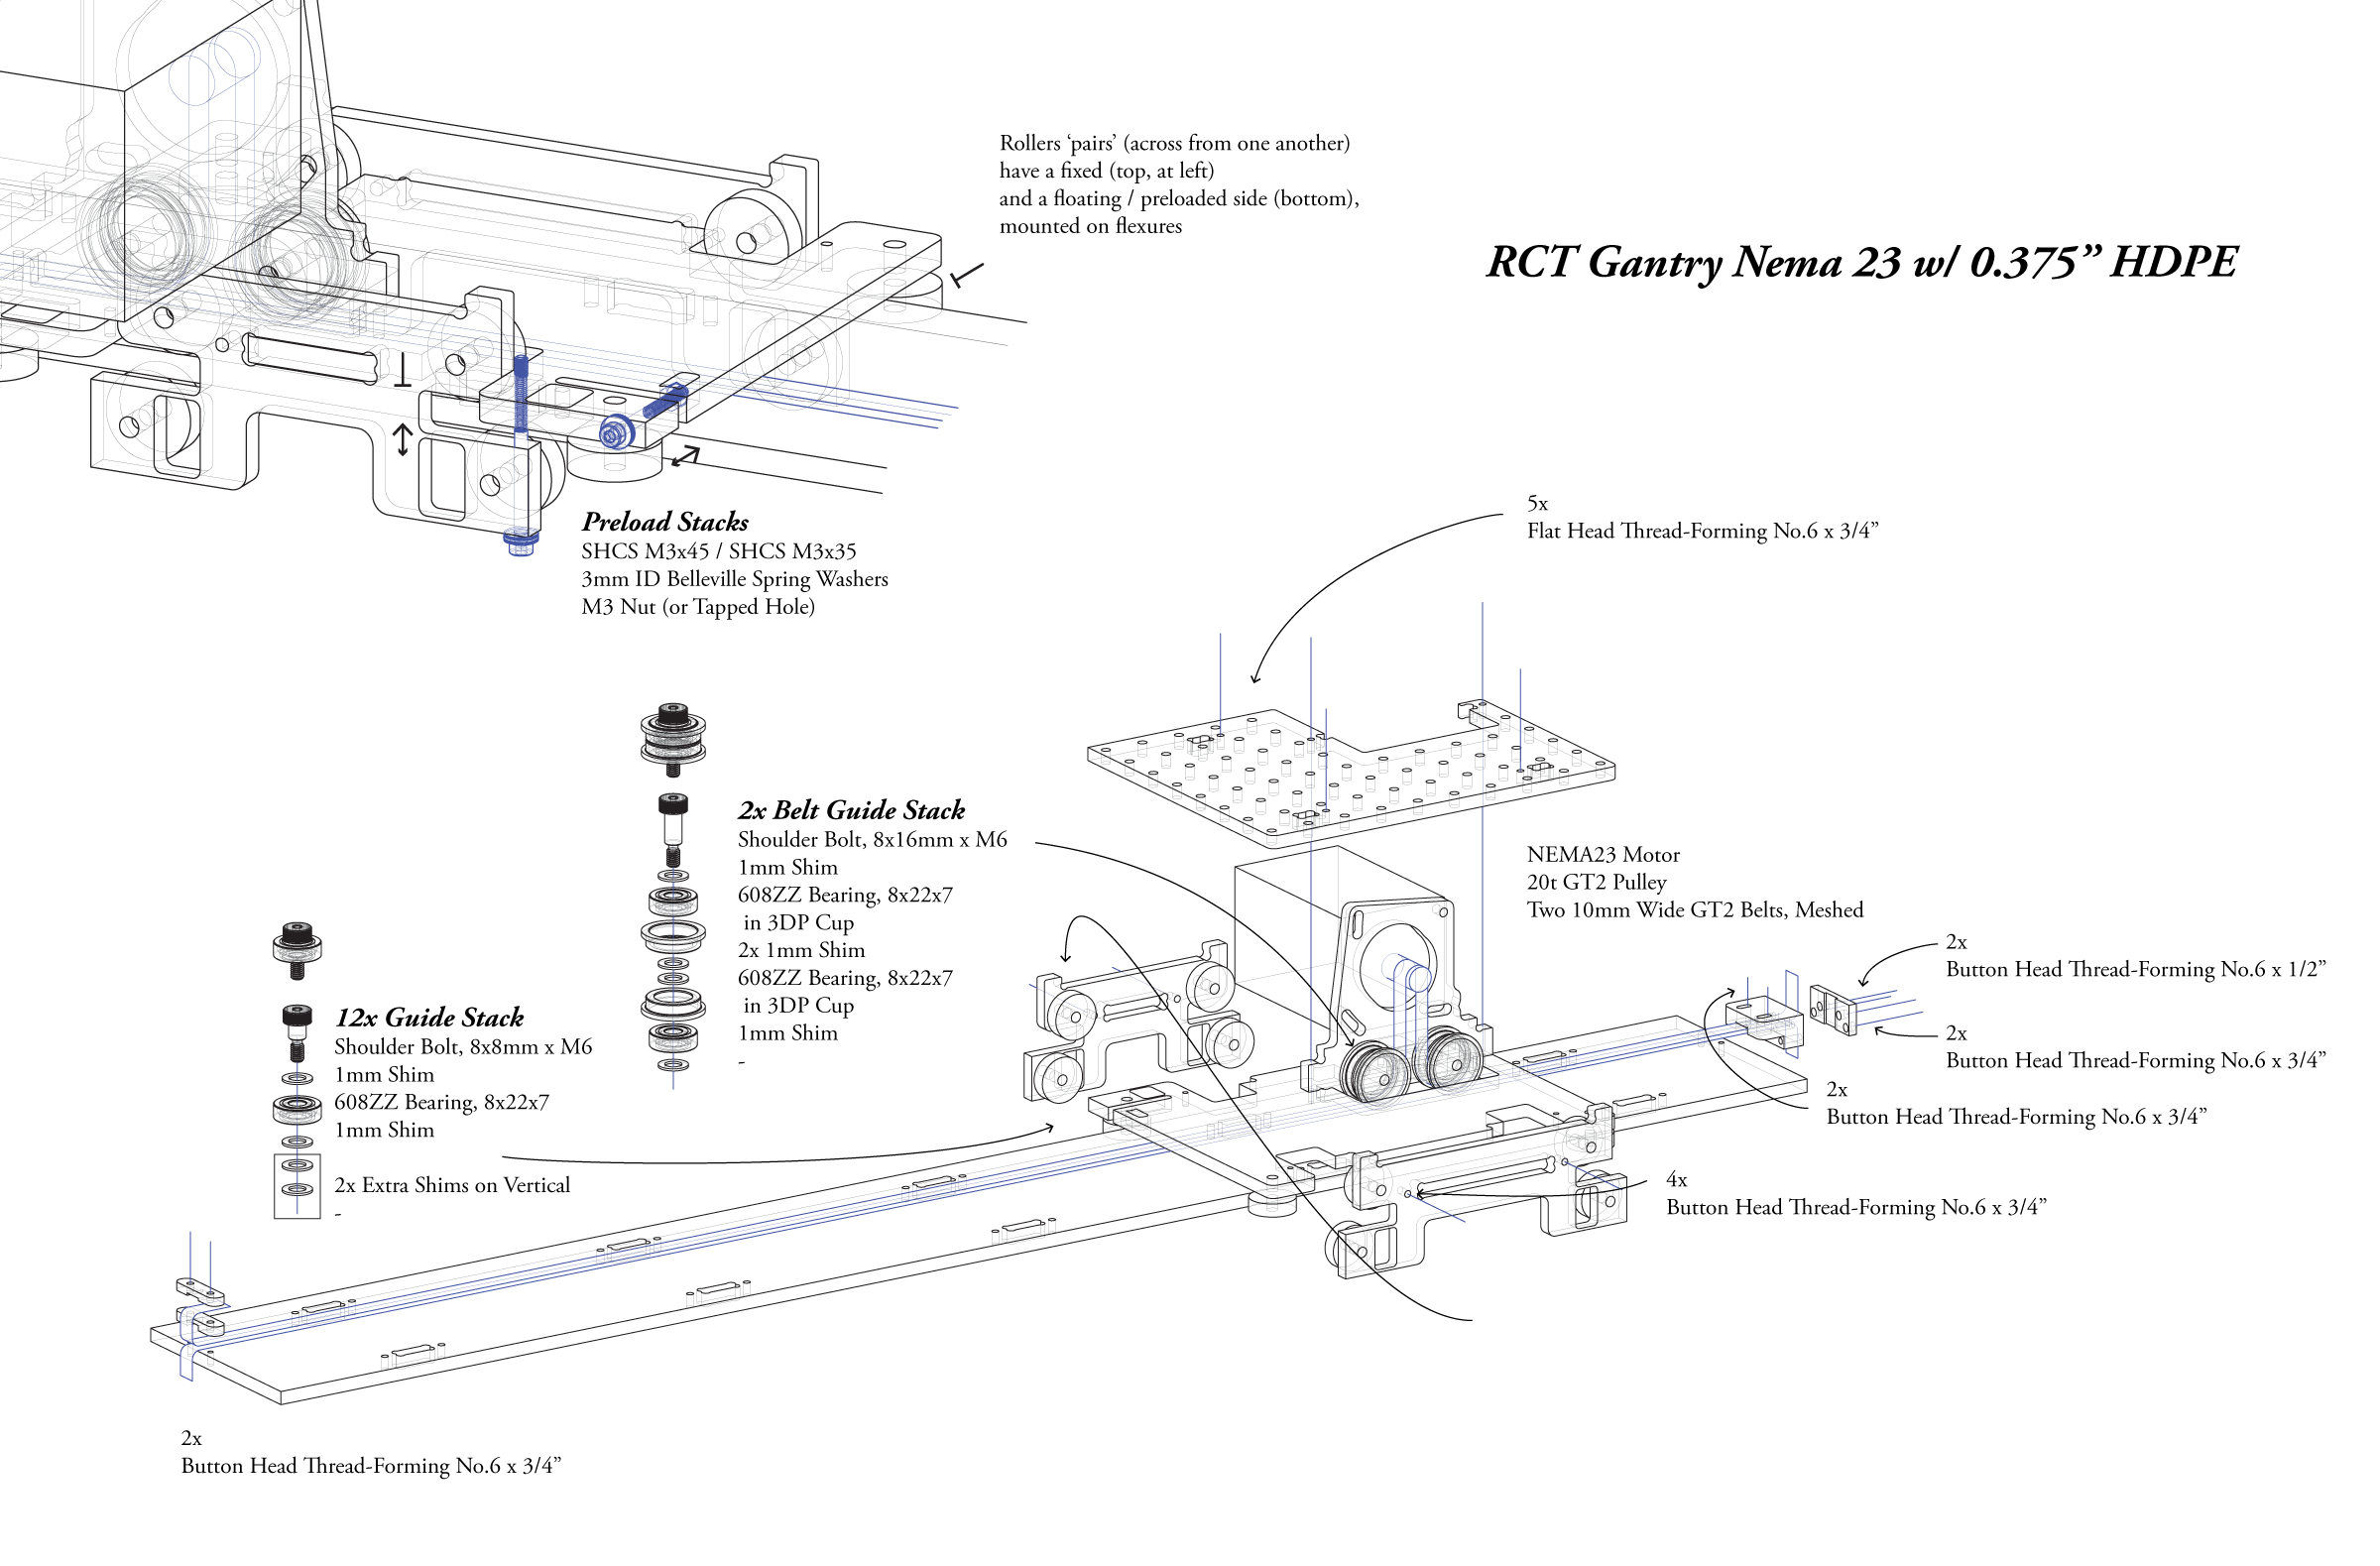 images/RCTN23-hdpe-dwg.png